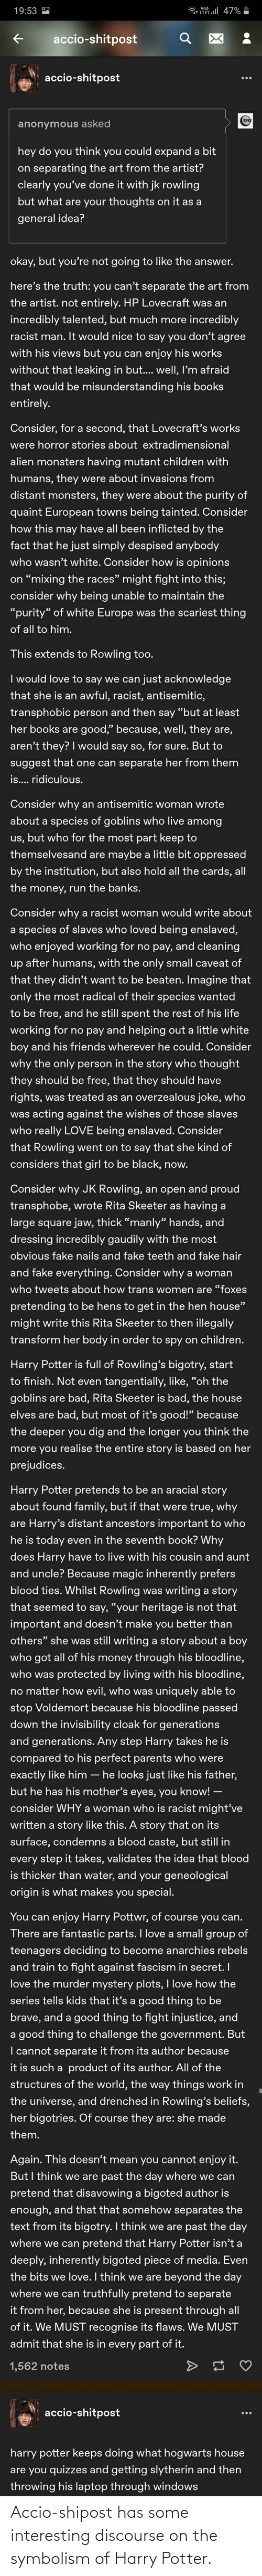 symbolism: Accio-shipost has some interesting discourse on the symbolism of Harry Potter.